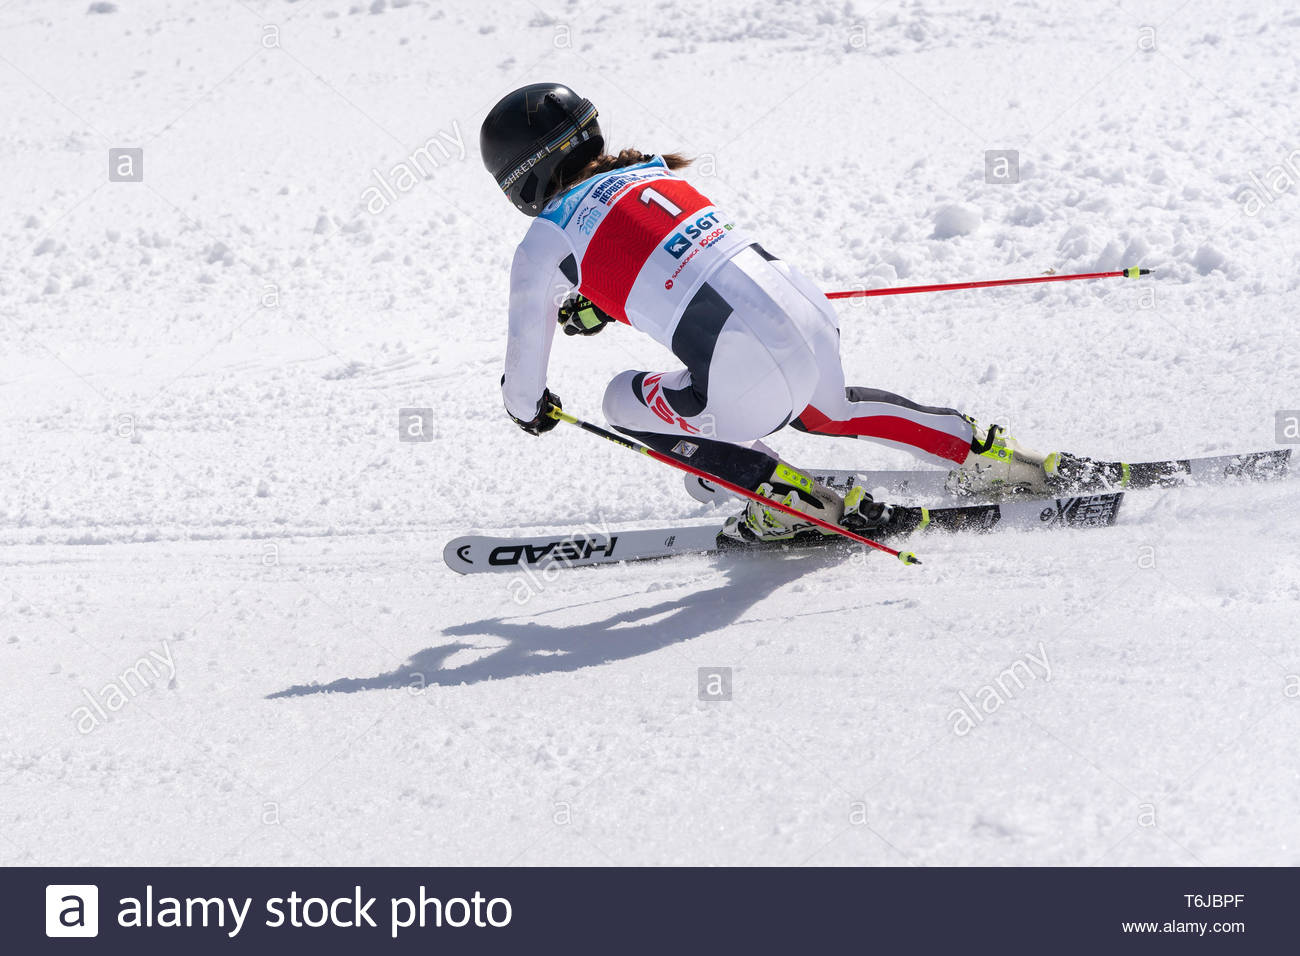 KAMCHATKA PENINSULA, RUSSIAN FEDERATION - APRIL 1, 2019: Russian Women's Alpine Skiing Championship, giant slalom. Mountain skier Valentina Golenkova  - Stock Image